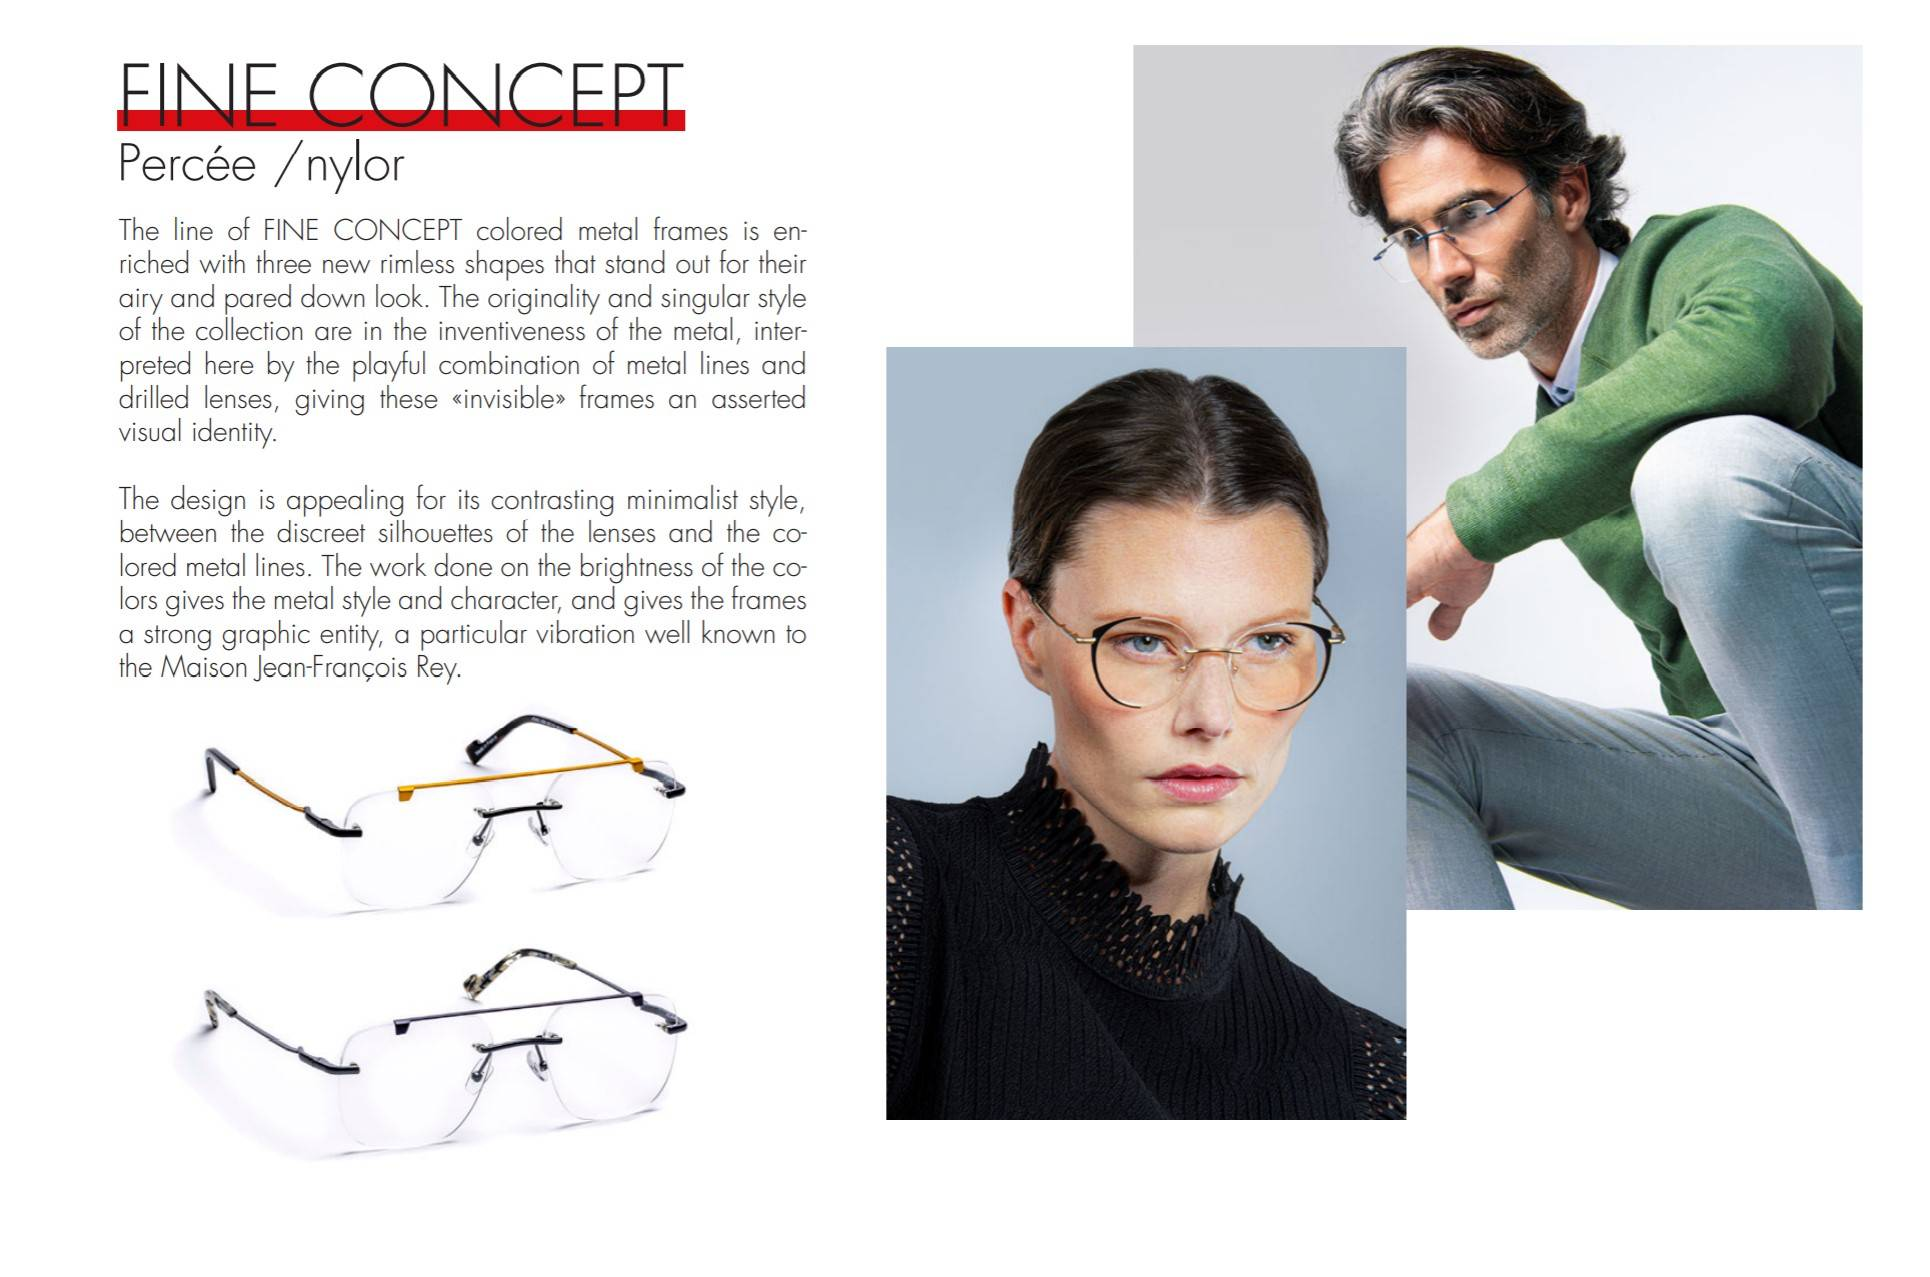 Fine Concept pieces are J F Rey's take on the minimalist trend in designer glasses.